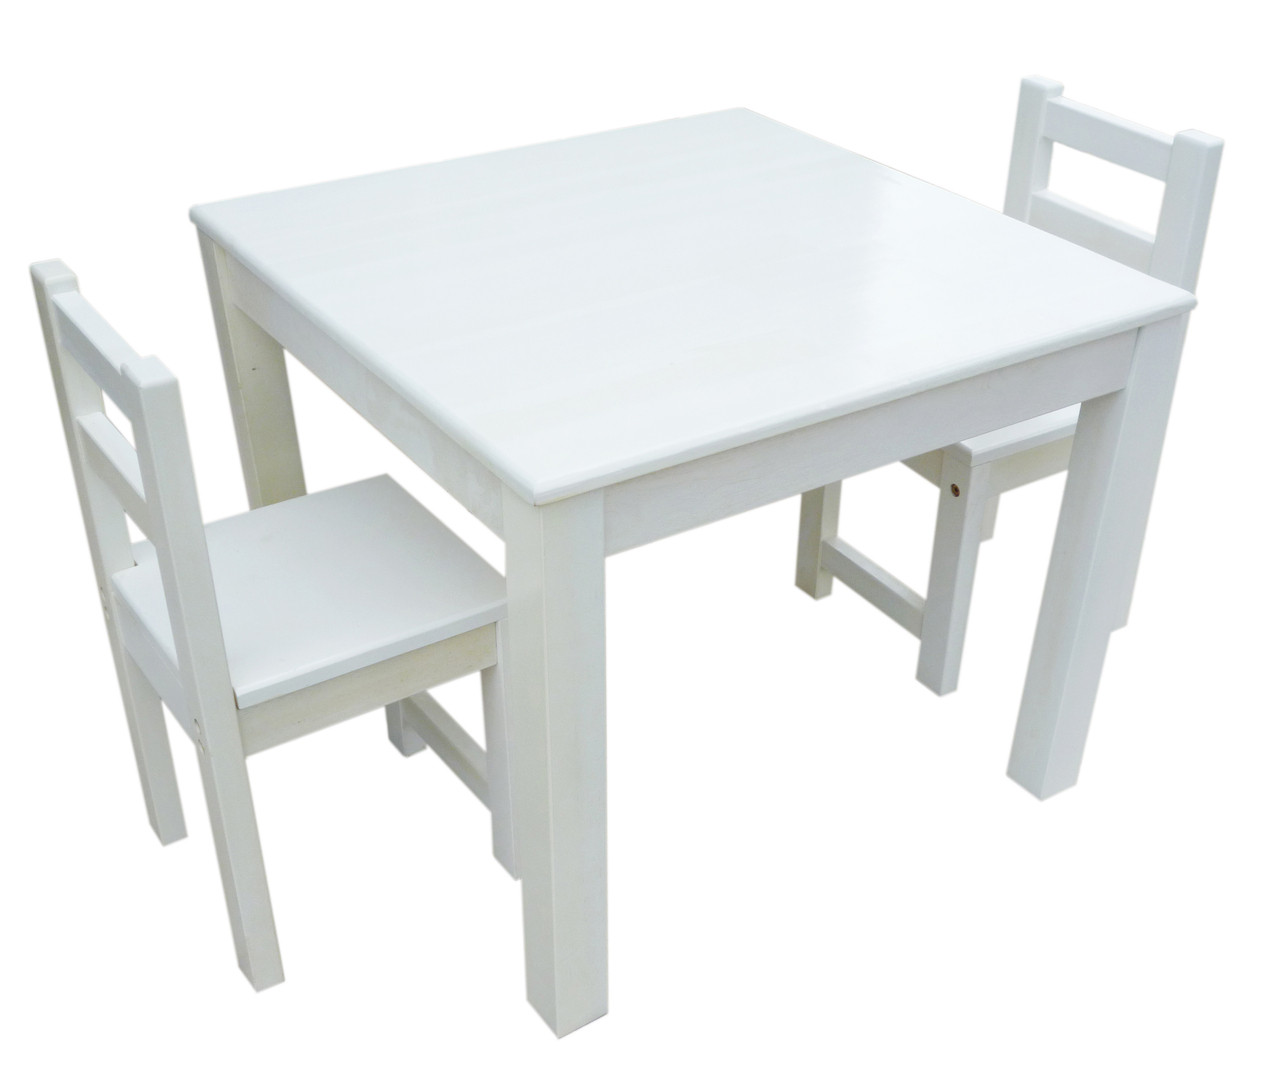 Qtoys eco friendly white table chair set for kids on for White kids chair